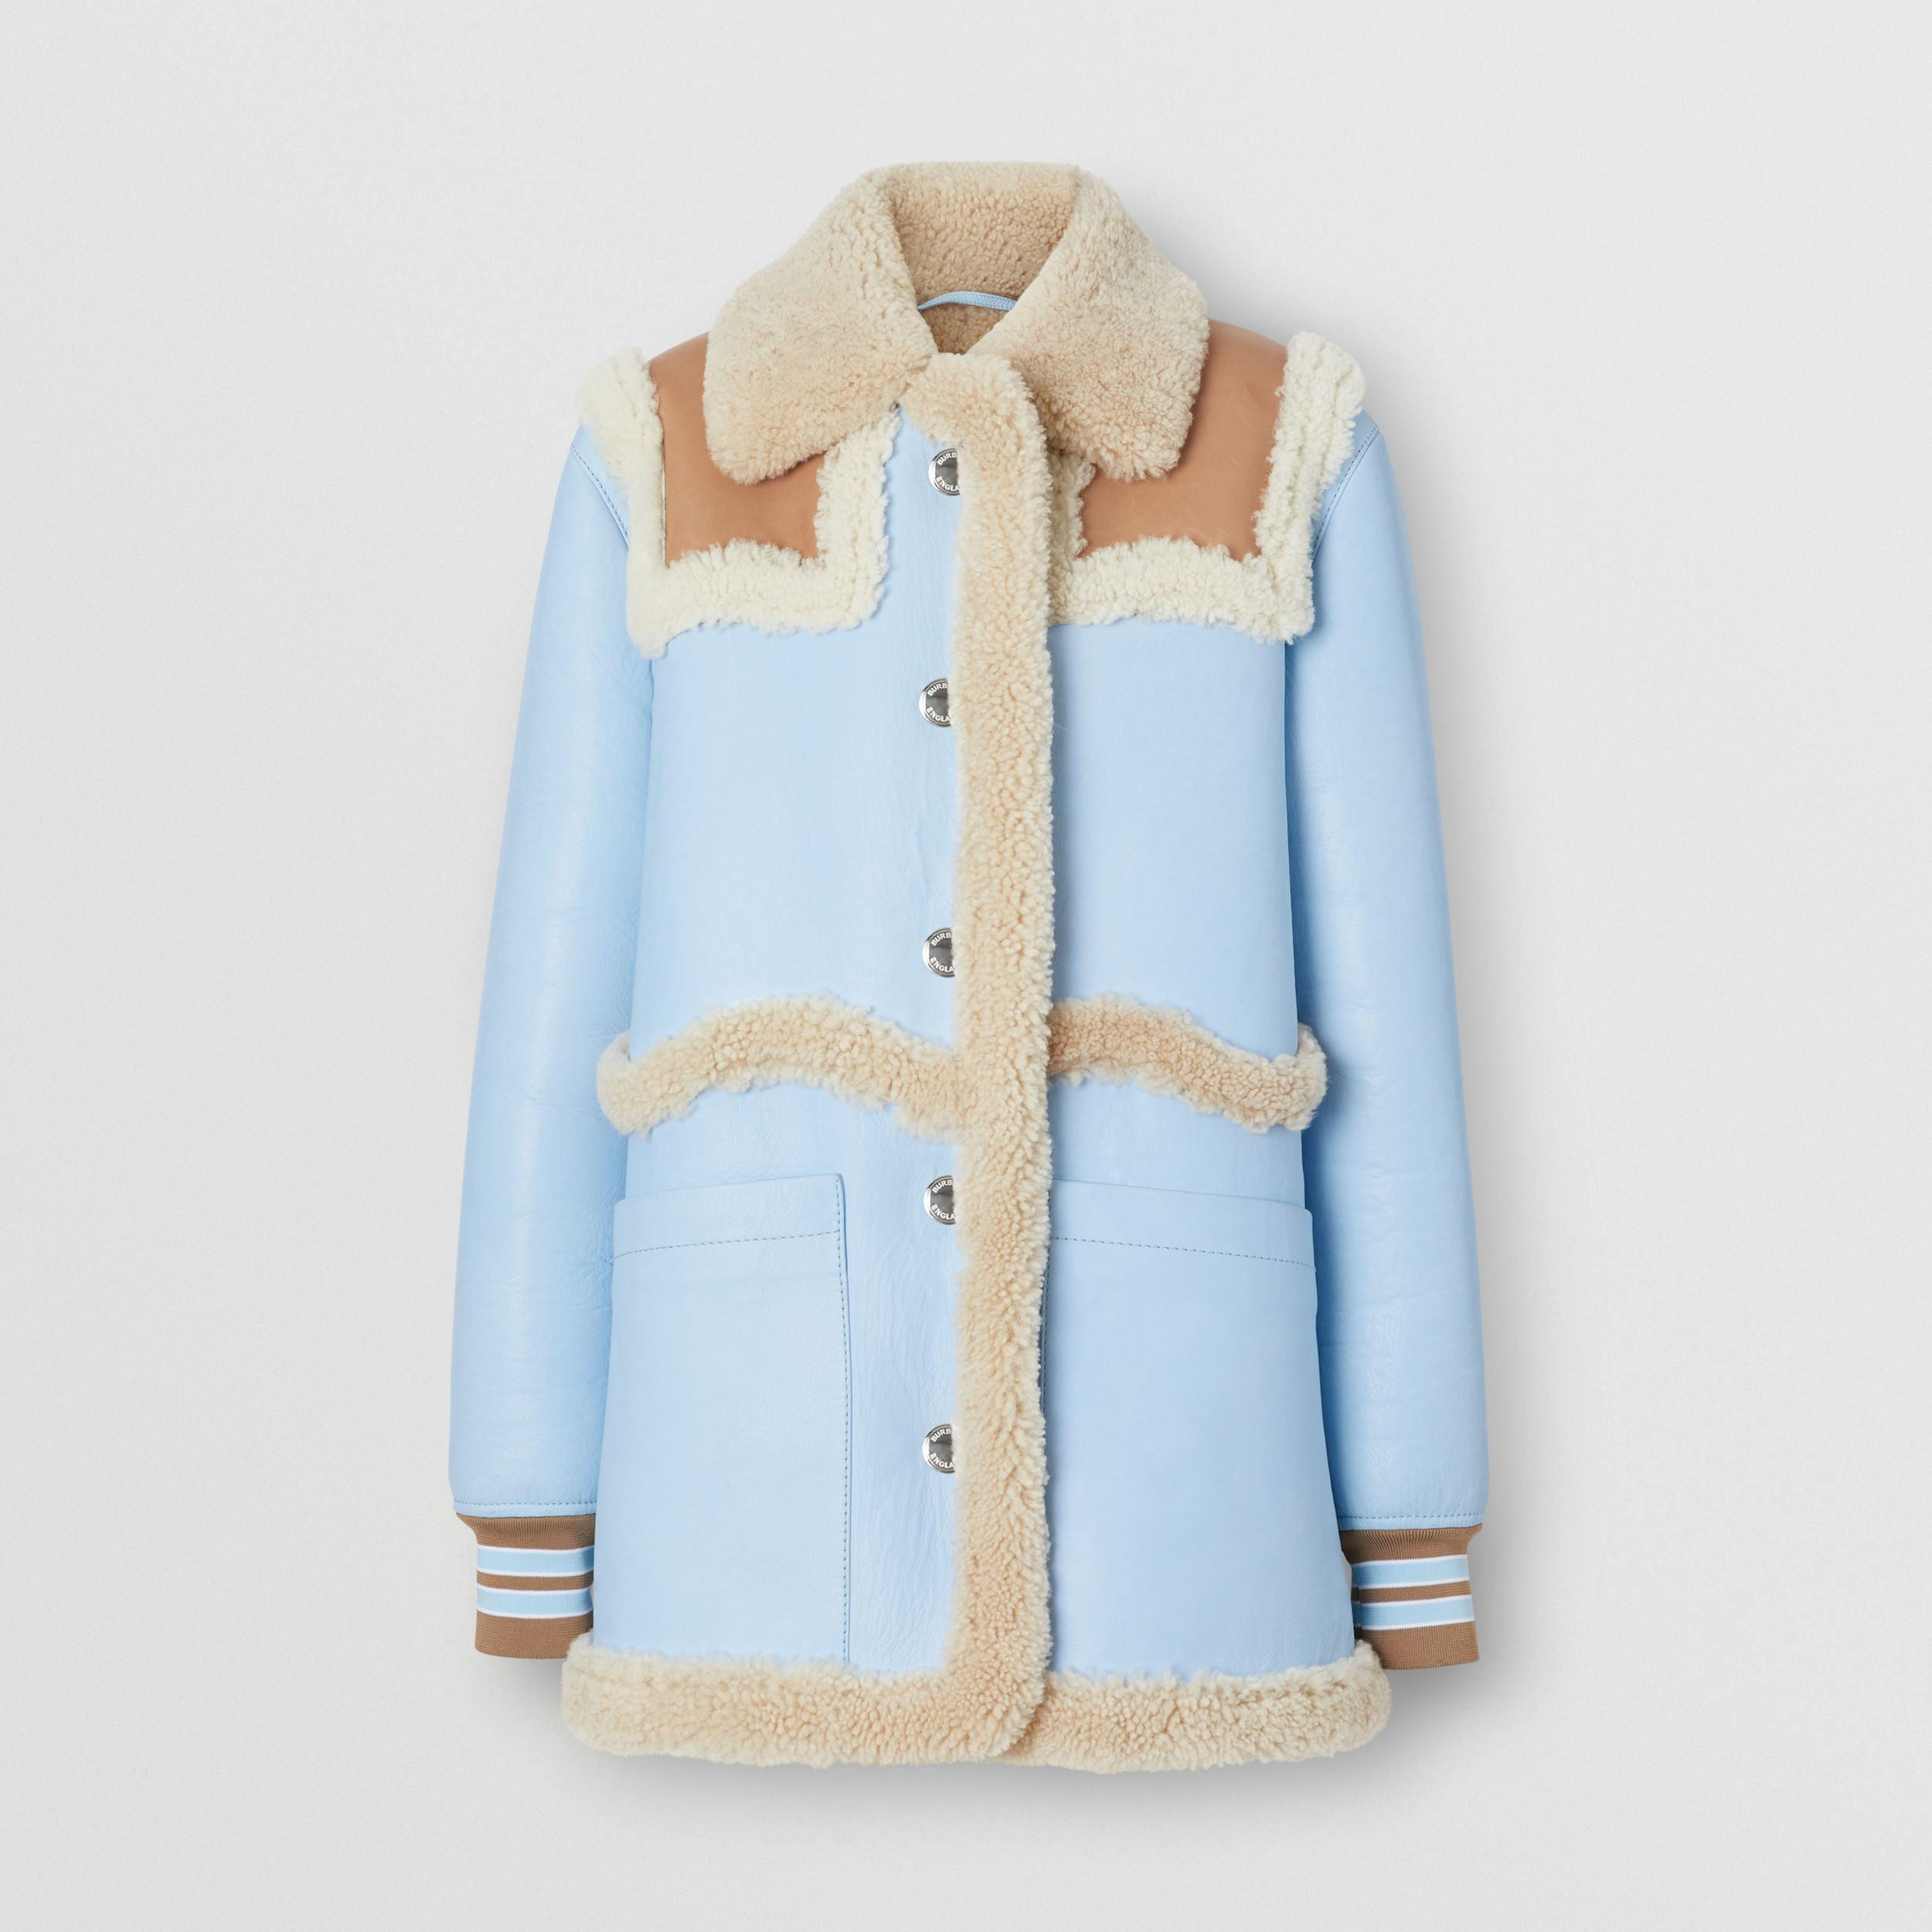 Two-tone Leather and Shearling Coat in Baby Blue - Women | Burberry - 4